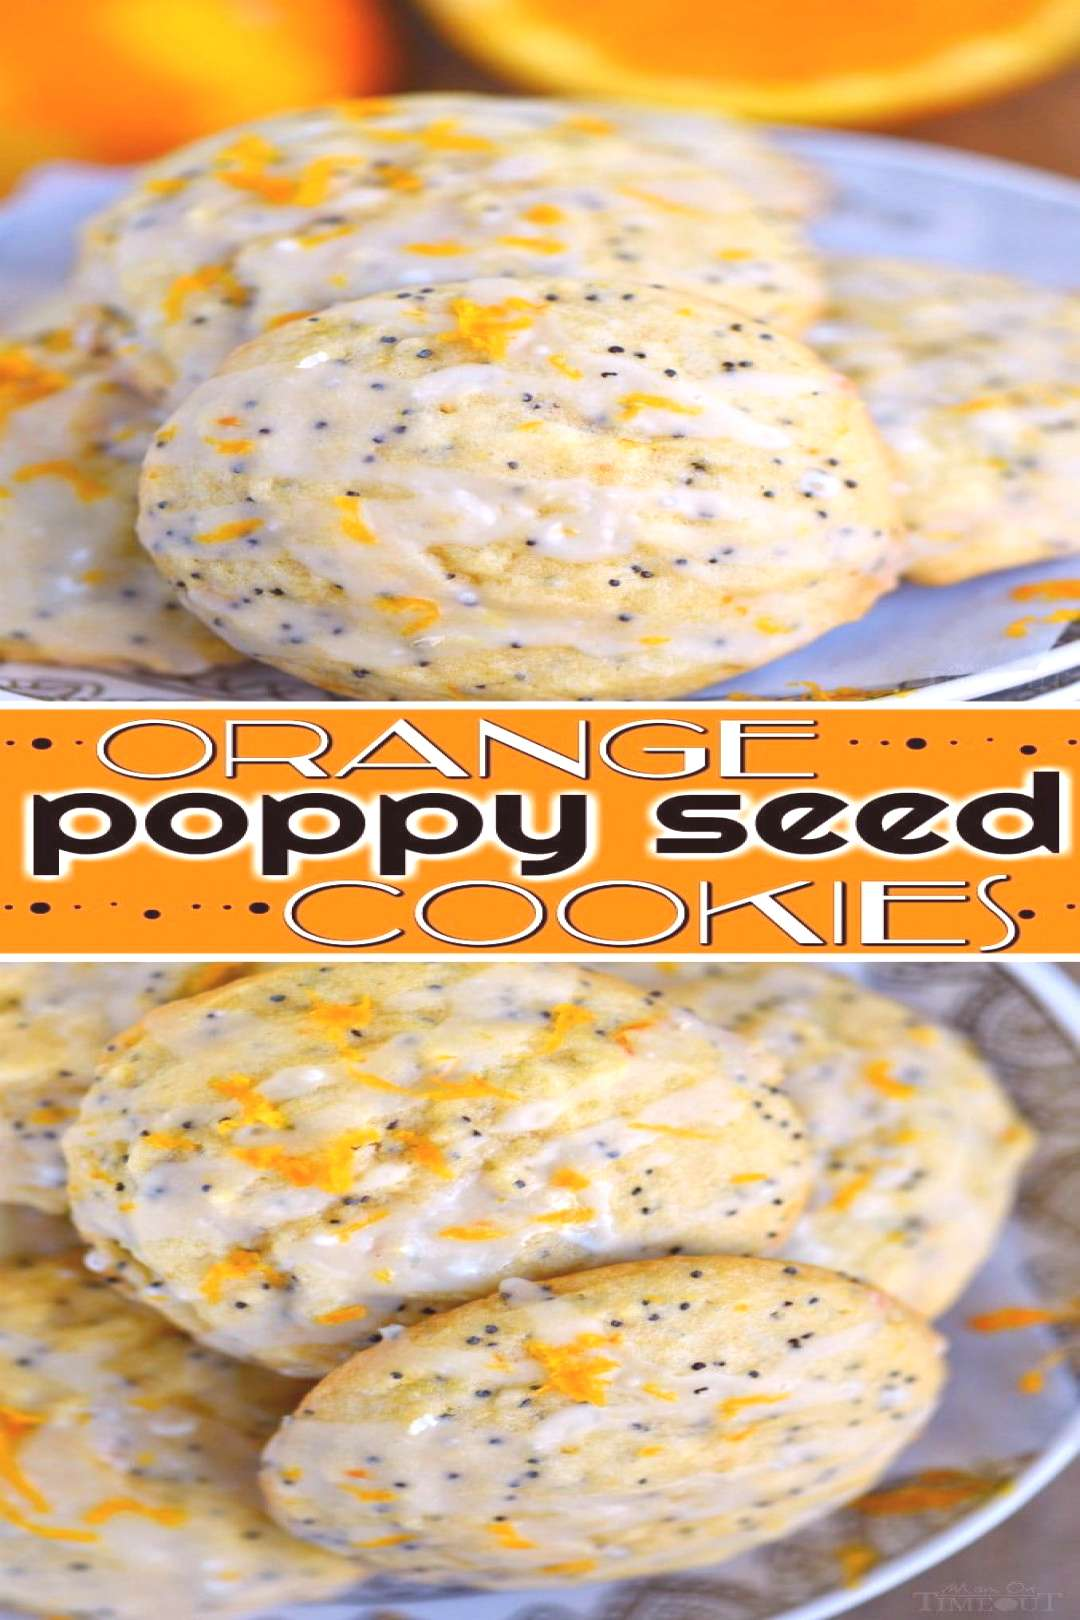 These easy Glazed Orange Poppy Seed Cookies are bursting with orange flavor! So soft and tender, th